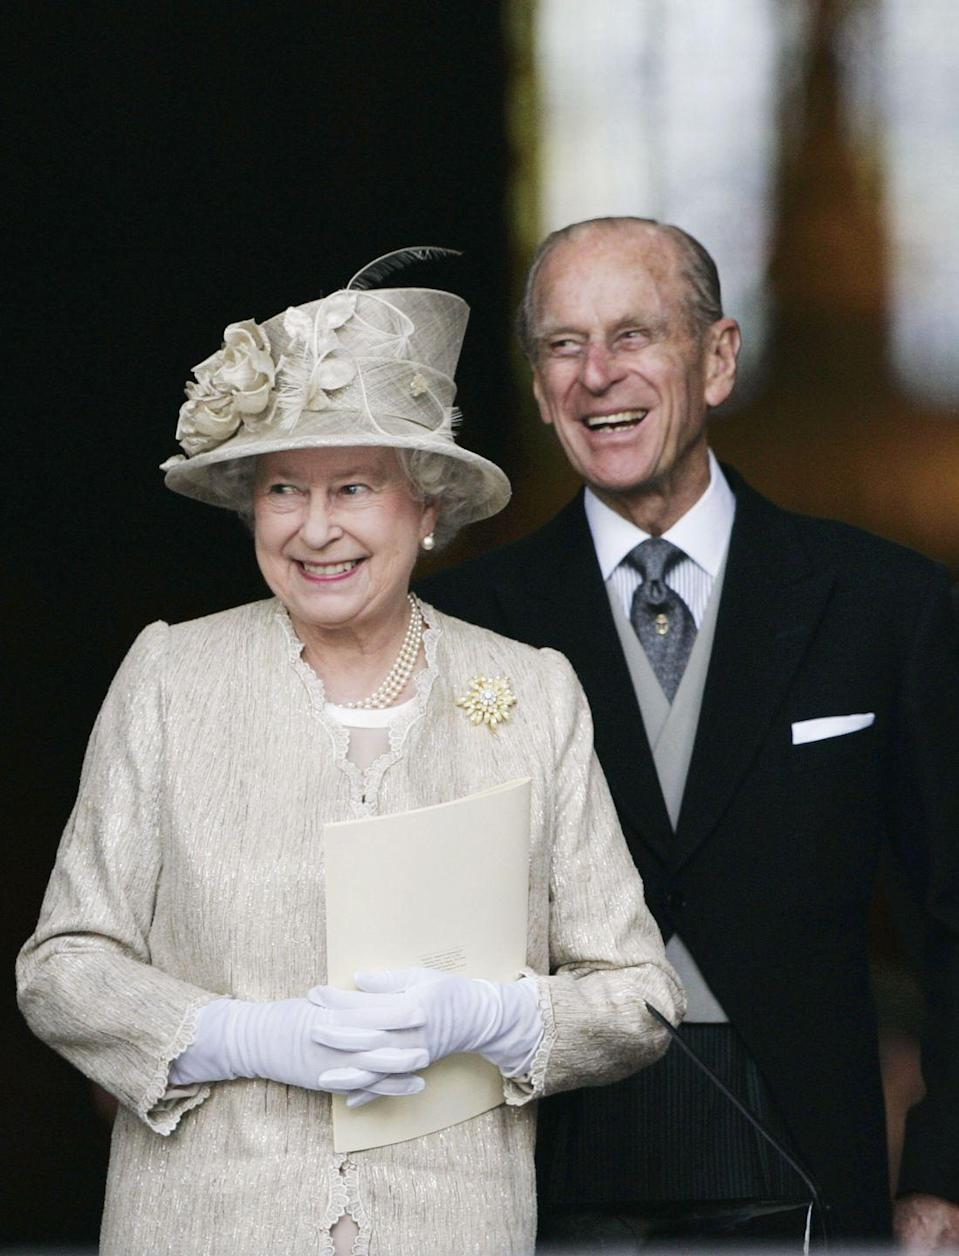 """<p>The Queen and Prince Philip arrive at St Paul's Cathedral for a service of <a href=""""https://www.goodhousekeeping.com/uk/wine/g25045542/thanksgiving-wine/"""" rel=""""nofollow noopener"""" target=""""_blank"""" data-ylk=""""slk:Thanksgiving"""" class=""""link rapid-noclick-resp"""">Thanksgiving</a> held in honour of the Queen's 80th <a href=""""https://www.goodhousekeeping.com/uk/food/a560130/this-is-what-people-are-eating-at-the-queens-birthday-party/"""" rel=""""nofollow noopener"""" target=""""_blank"""" data-ylk=""""slk:birthday"""" class=""""link rapid-noclick-resp"""">birthday</a>, and Prince Philip's 85th birthday.</p>"""